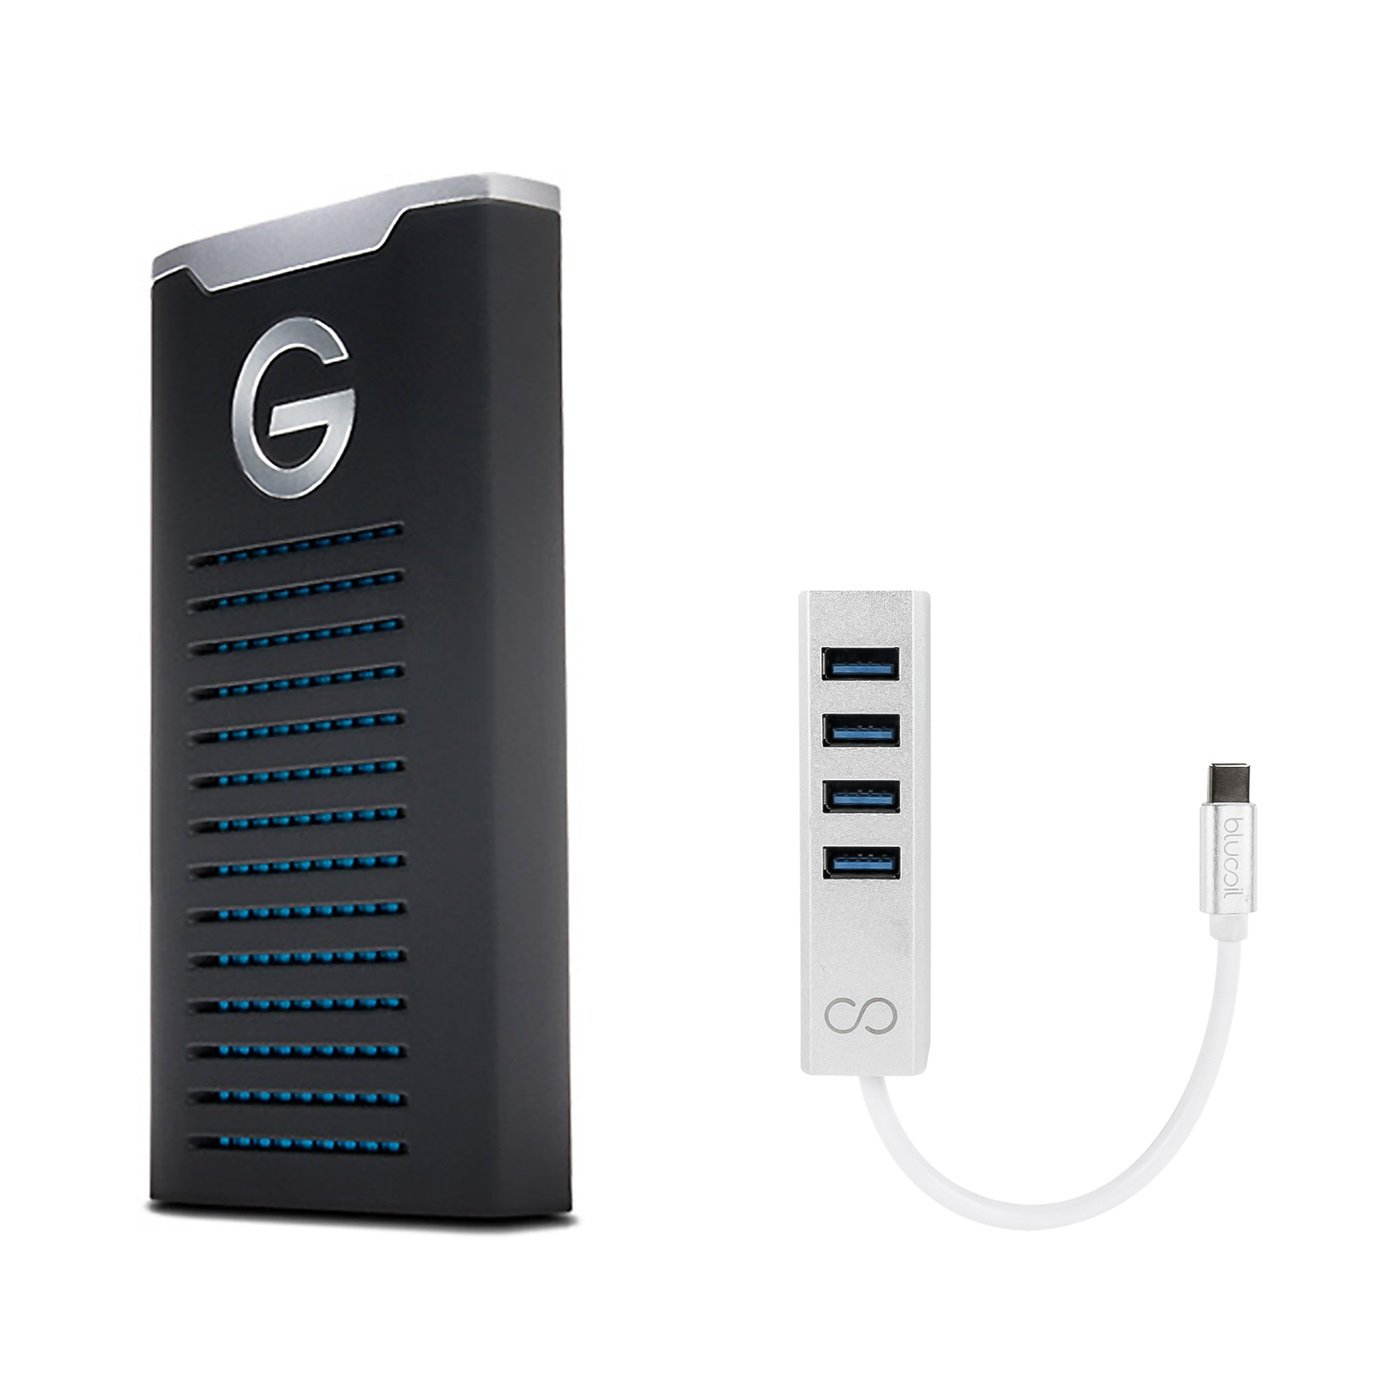 G-Technology G-Drive Mobile SSD R-Series USB-C Connectivity (USB 3.1 Gen 2)